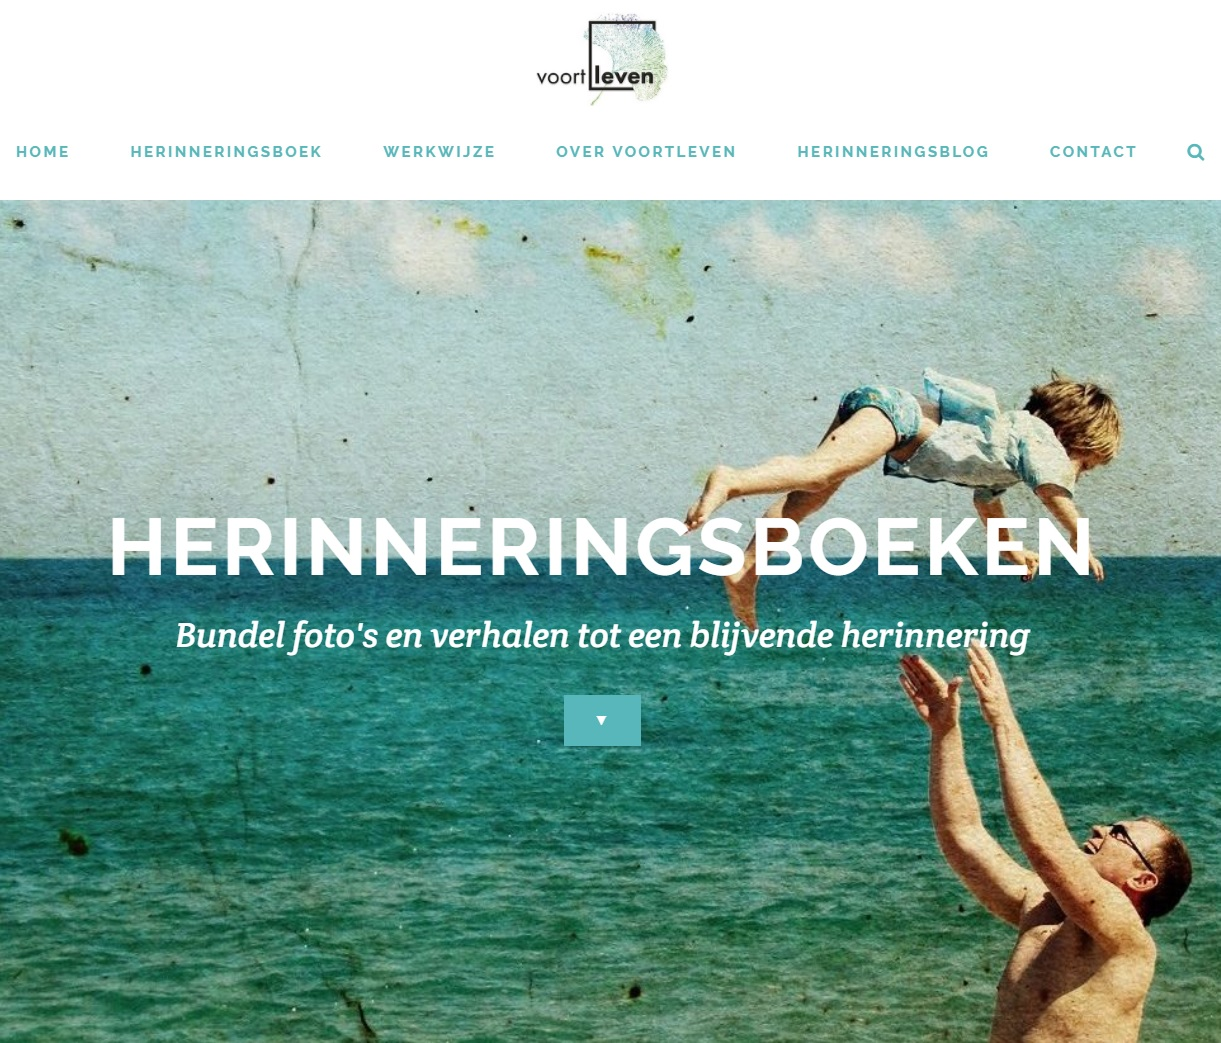 Website – Voortleven